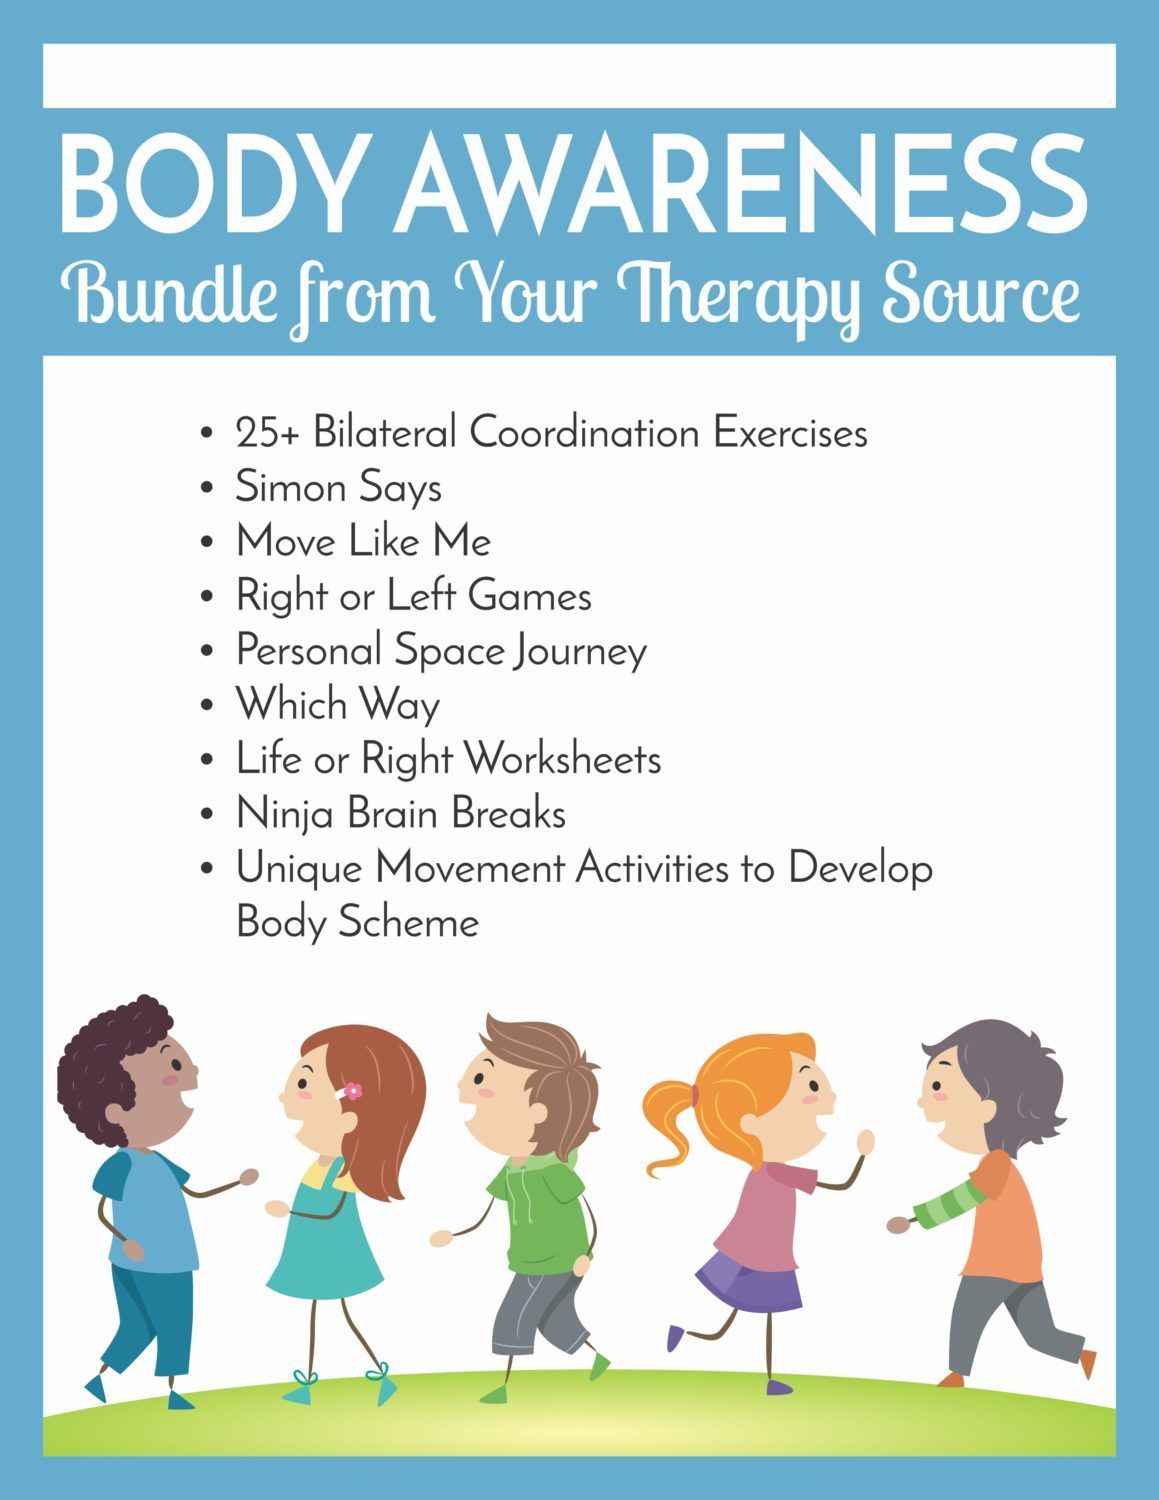 Body Awareness Activities For Children Your Therapy Source Chambregarconjeuxvideo Body Awareness Activities Body Awareness Social Skills Activities [ 1500 x 1159 Pixel ]